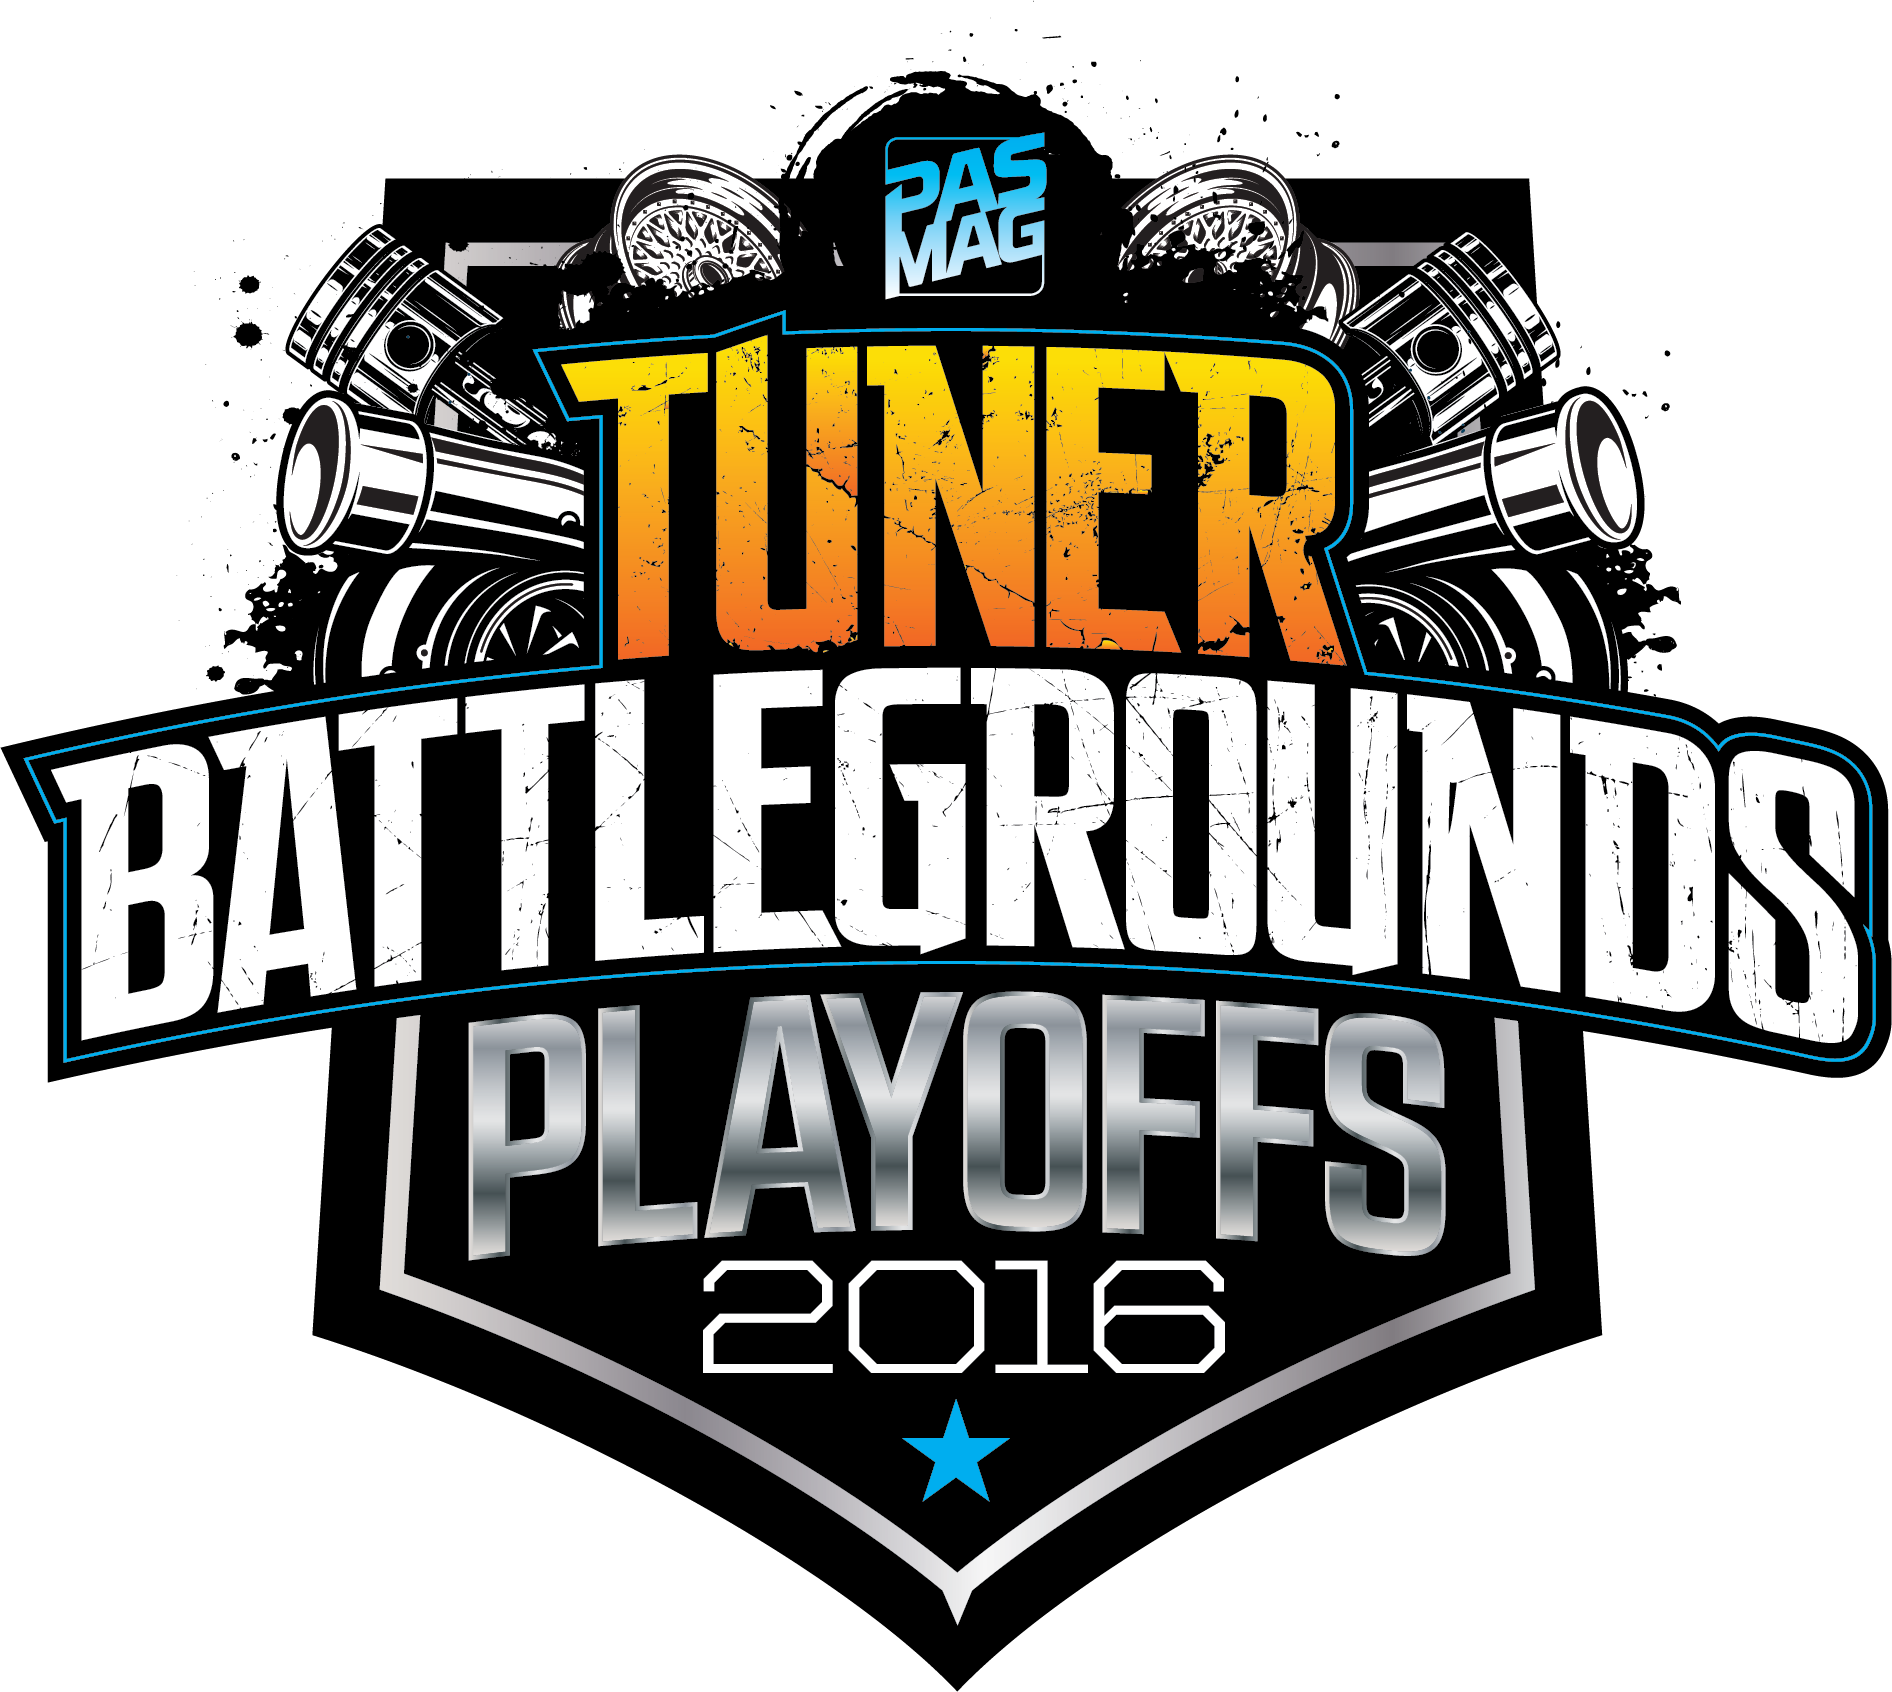 TBG Playoffs Blk 2016 WEB